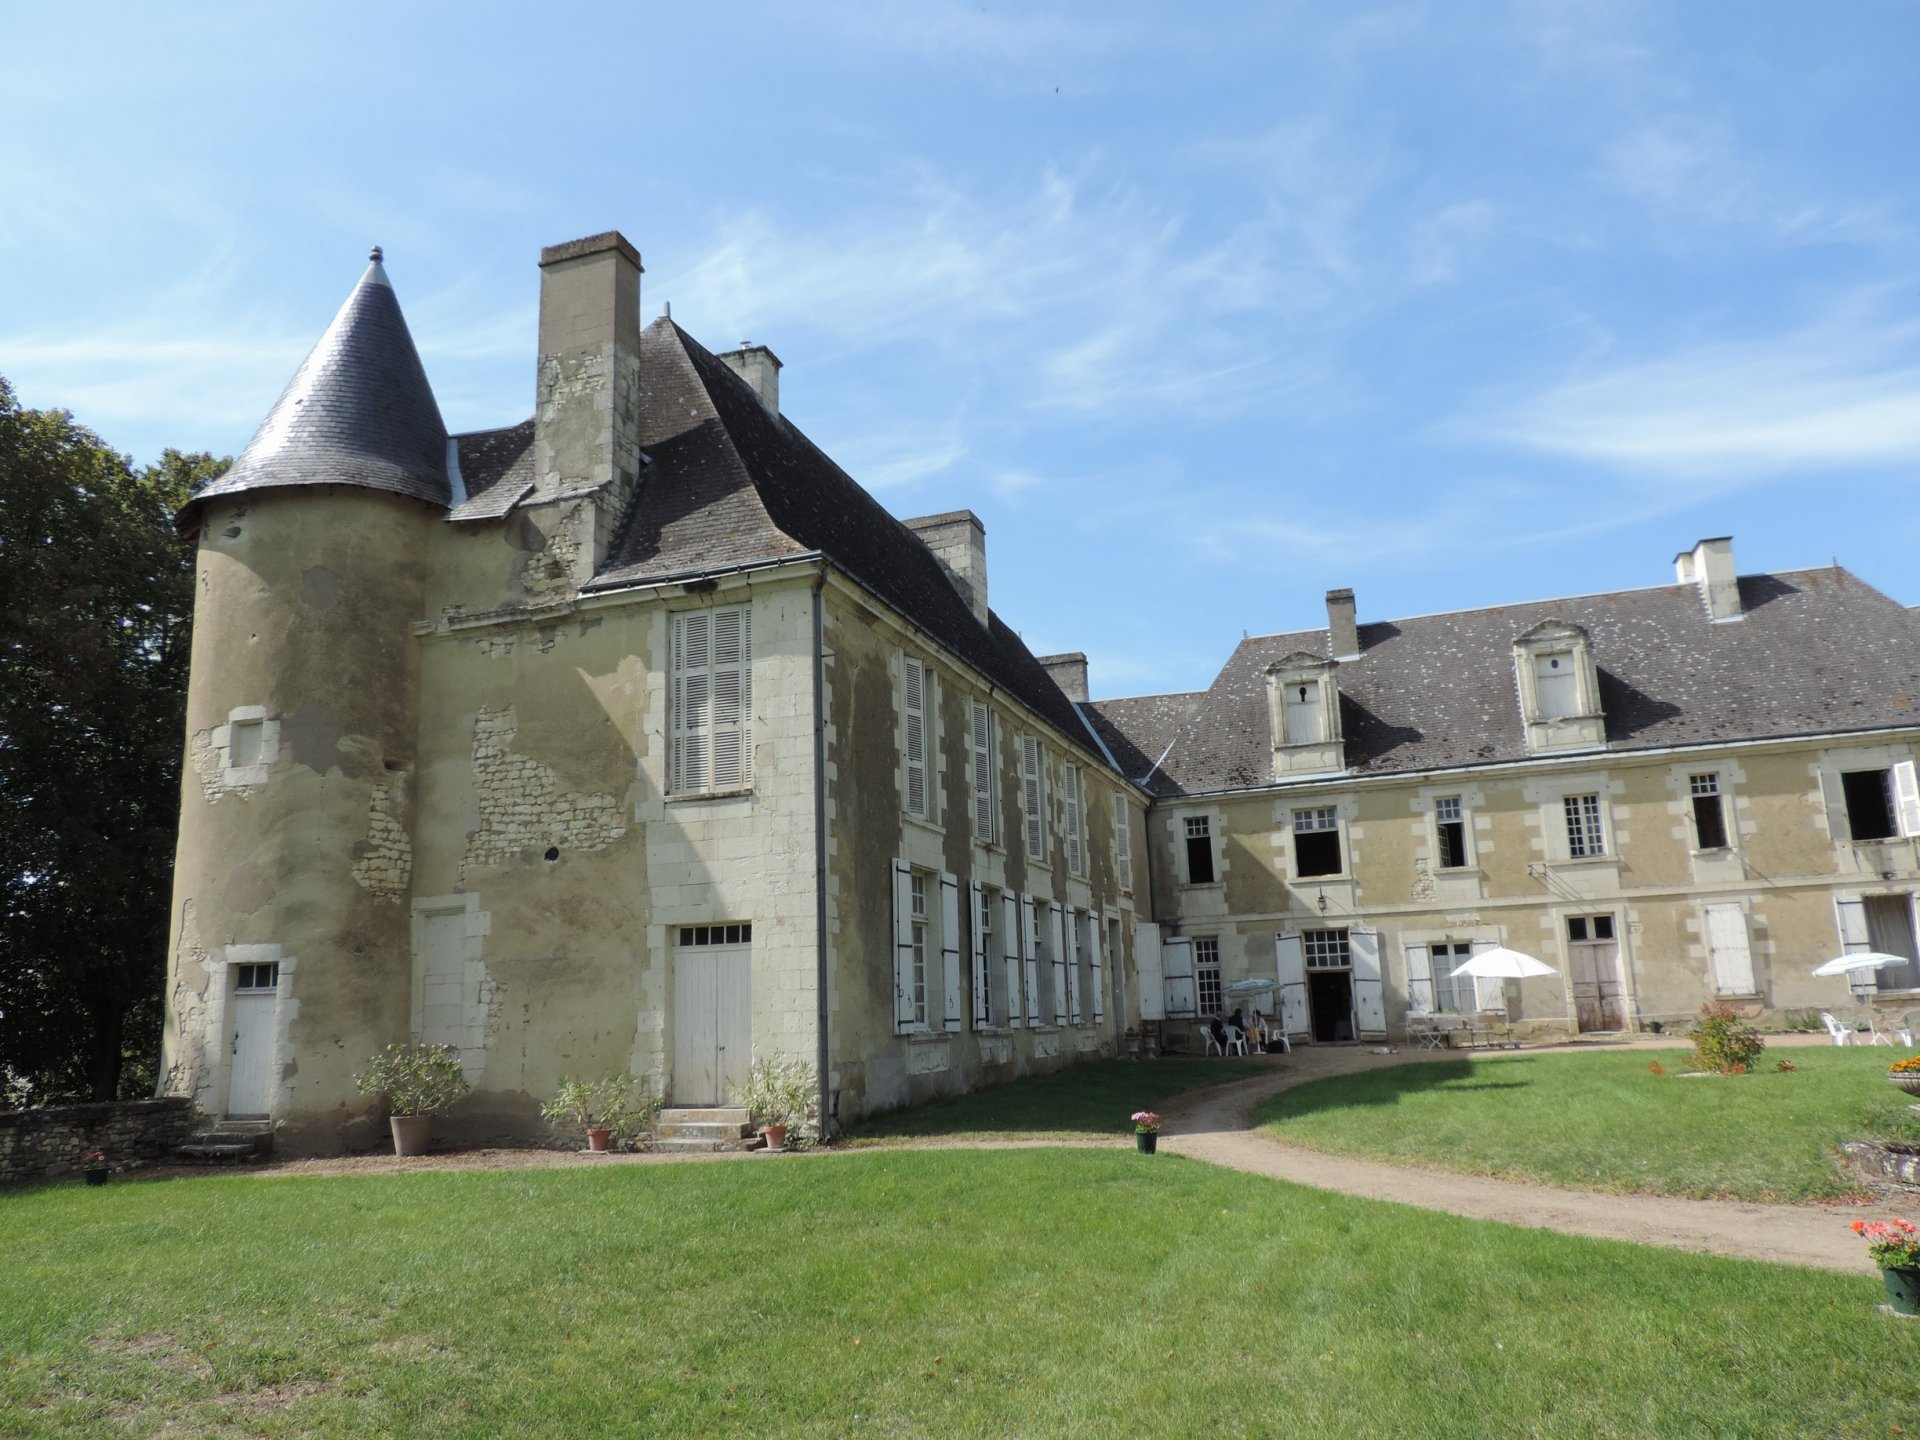 MAGNIFICENT Castle dating from 14th and 15th century with many original features